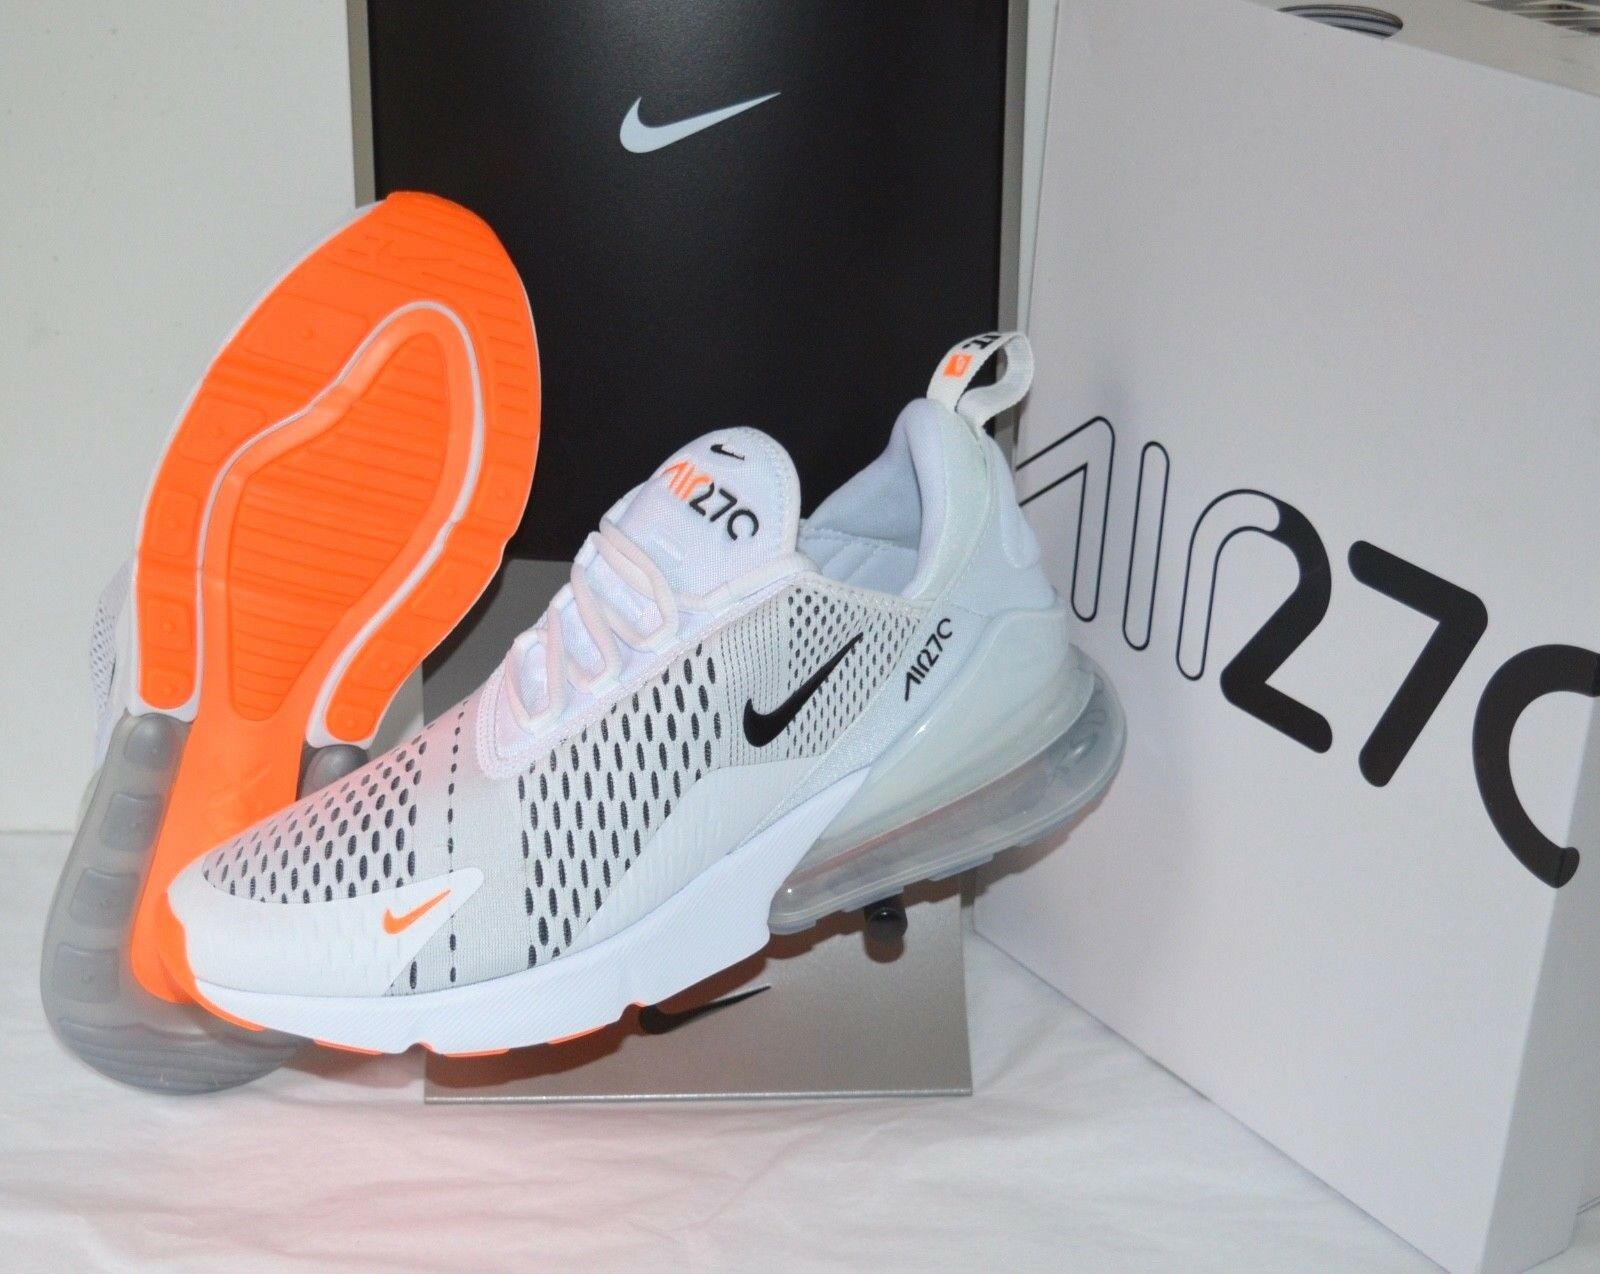 New New New Nike Air Max 270 Just Do It White Black Total orange sz 11 JDI Running shoes c63d57